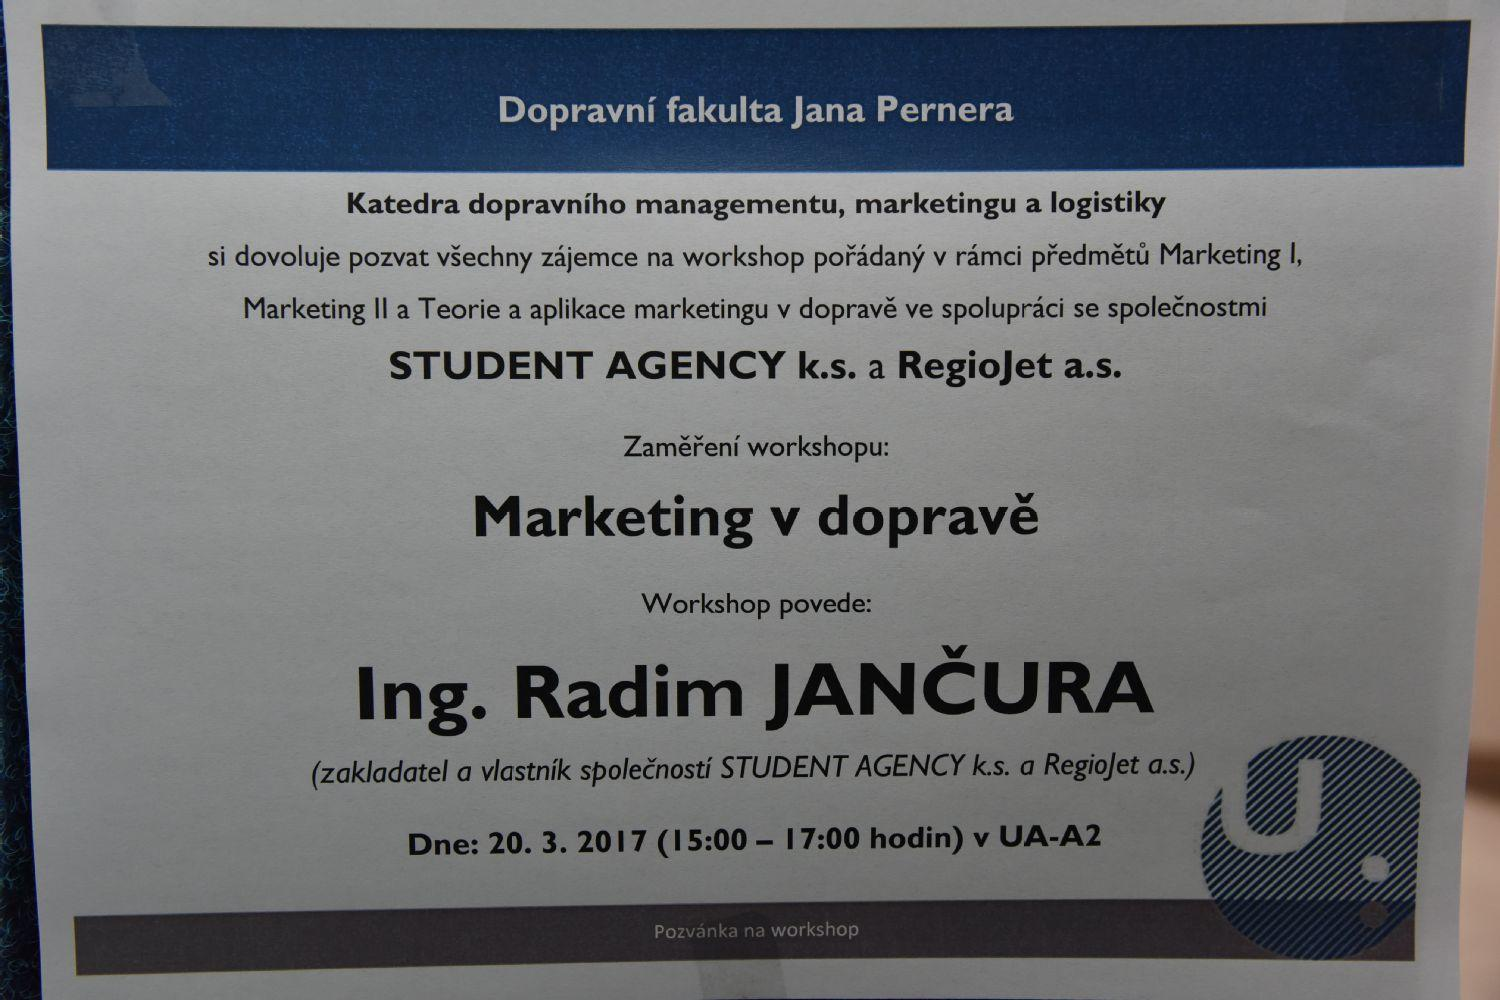 Marketing v dopravě - Ing. Radim Jančura - 20. 3. 2017